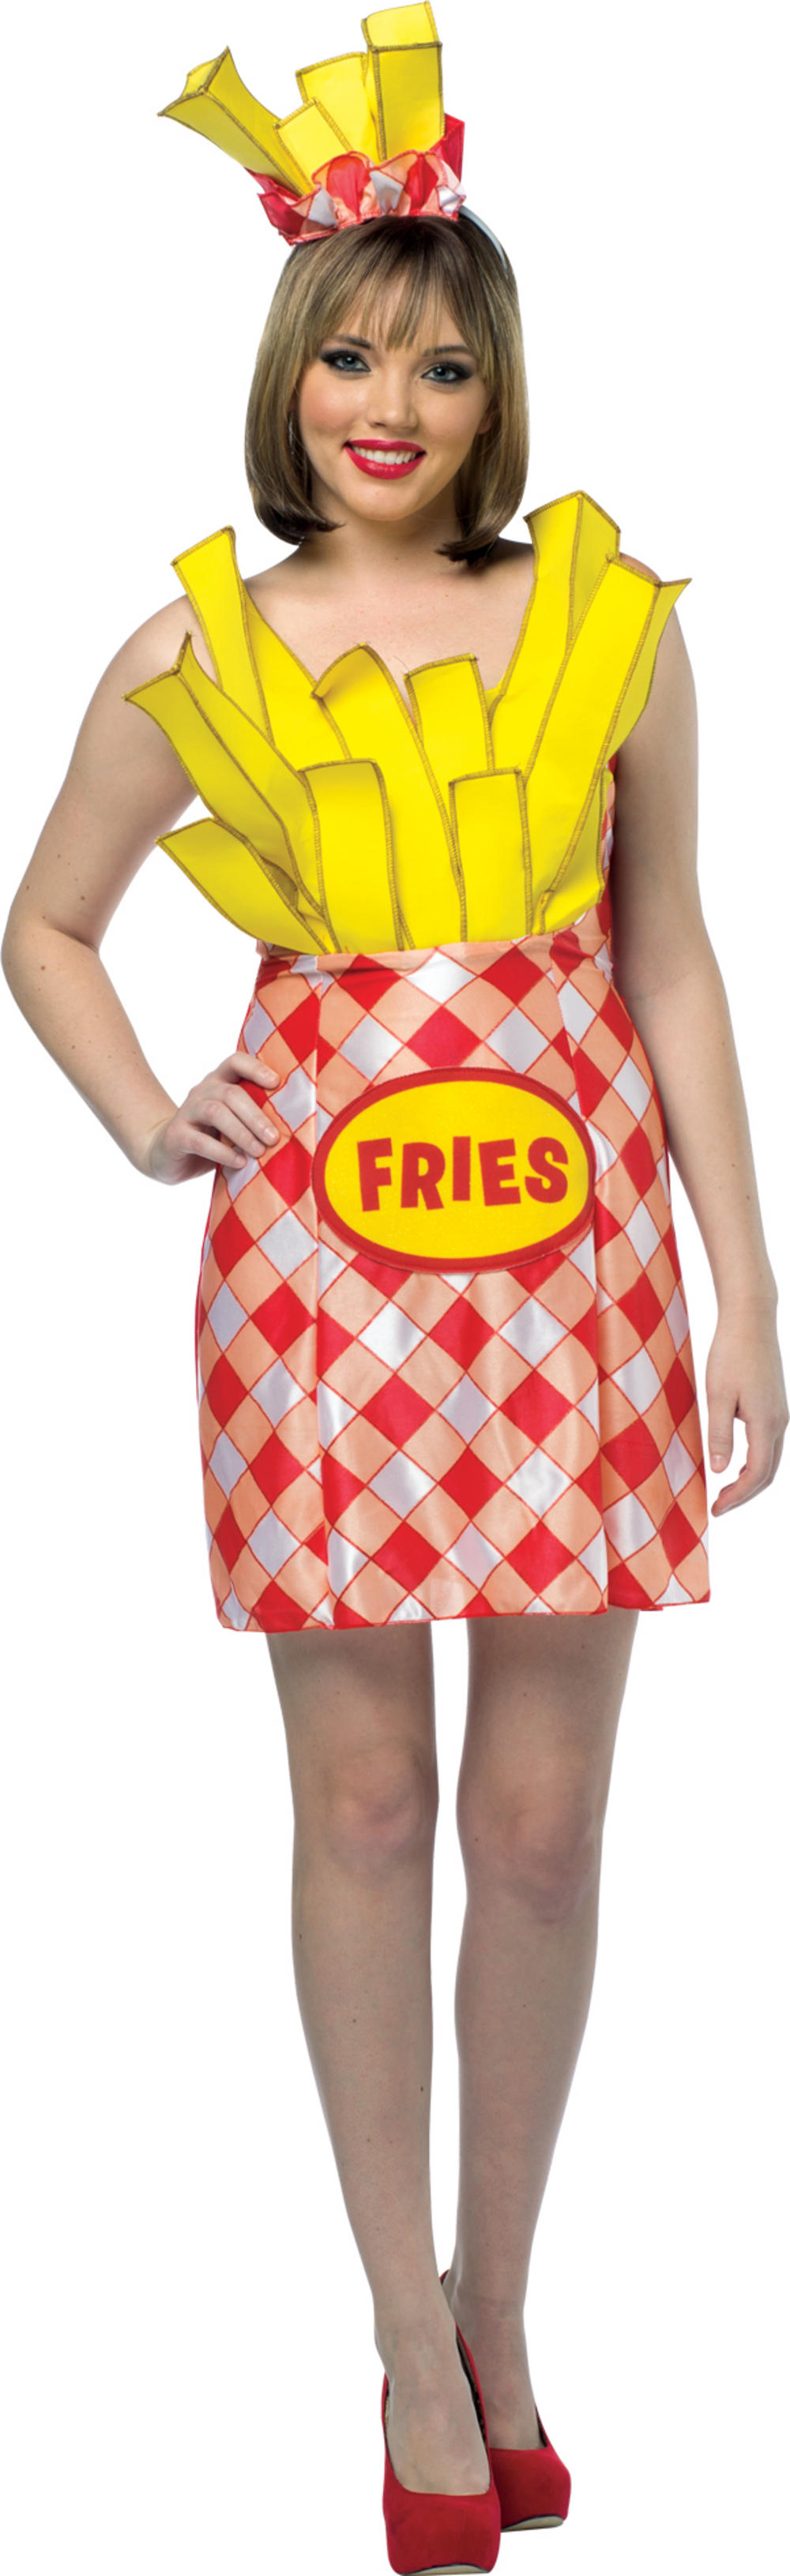 French Fries Ladies Costume